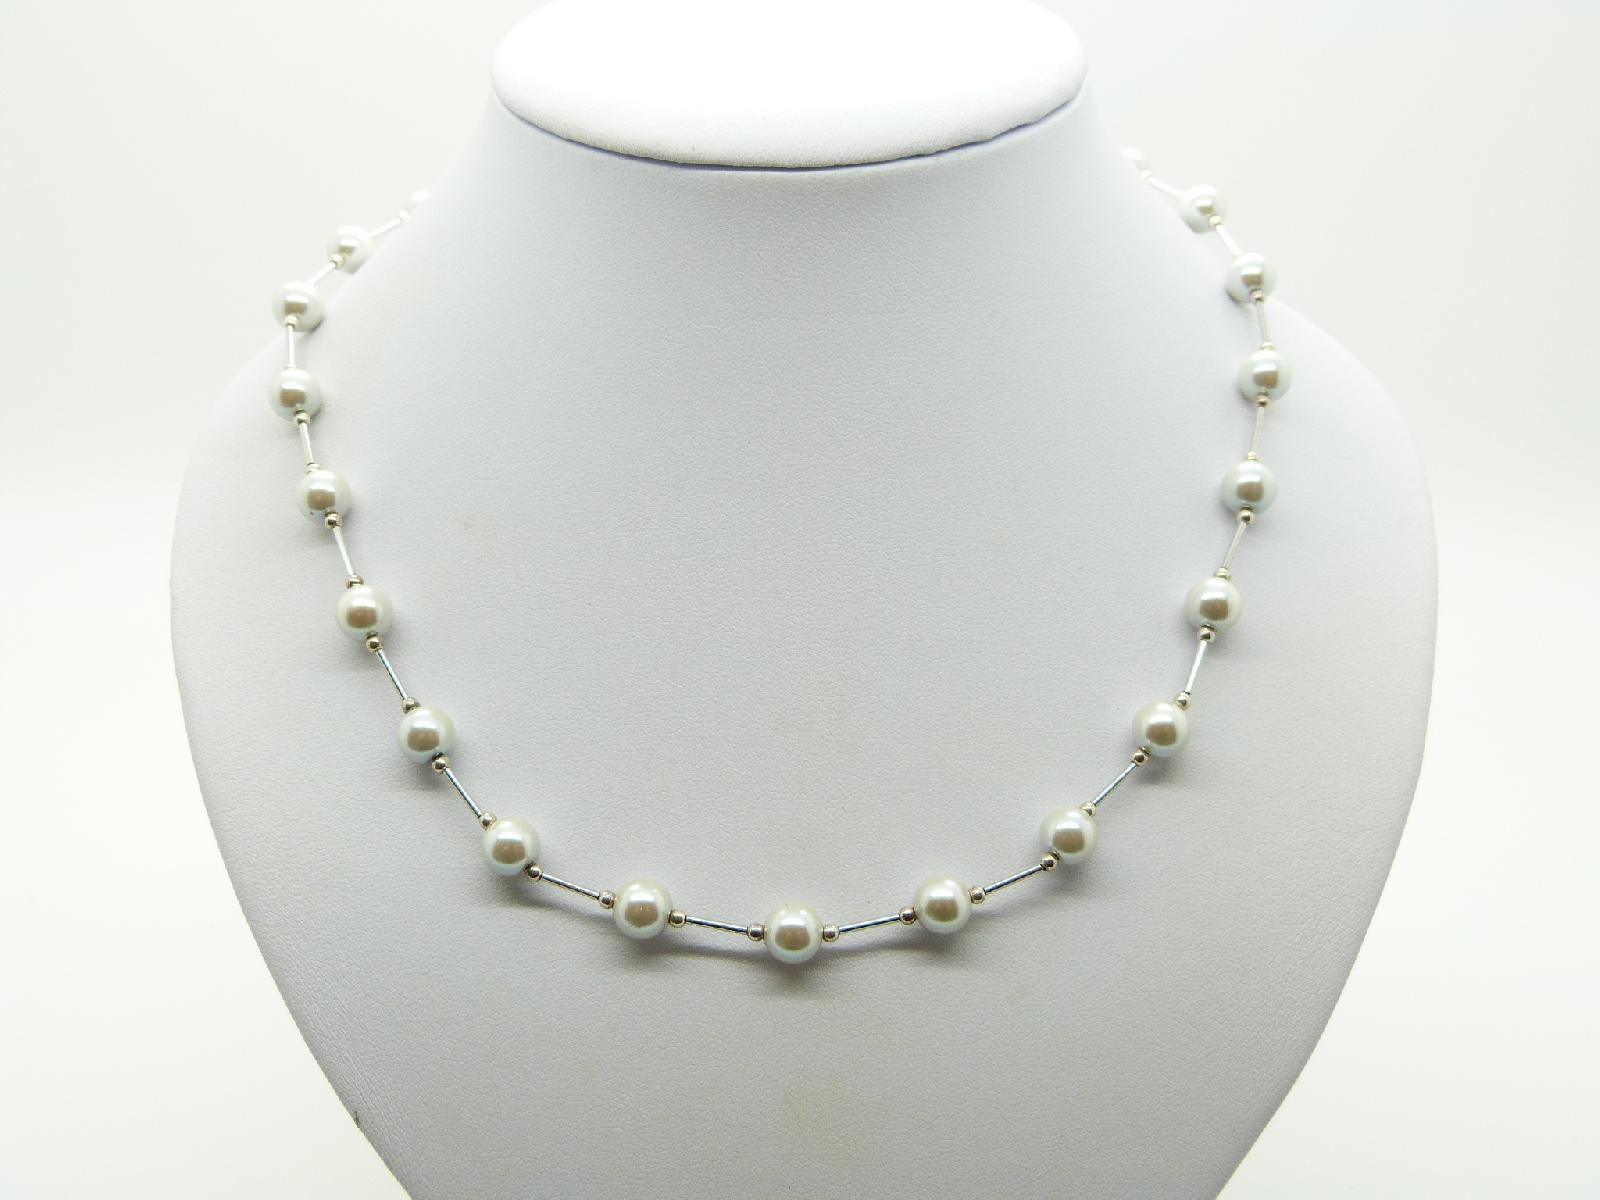 £30.00 - CHi-Ki Glass Faux Pearl Bead Magnetic Therapy Necklace New with Tag!